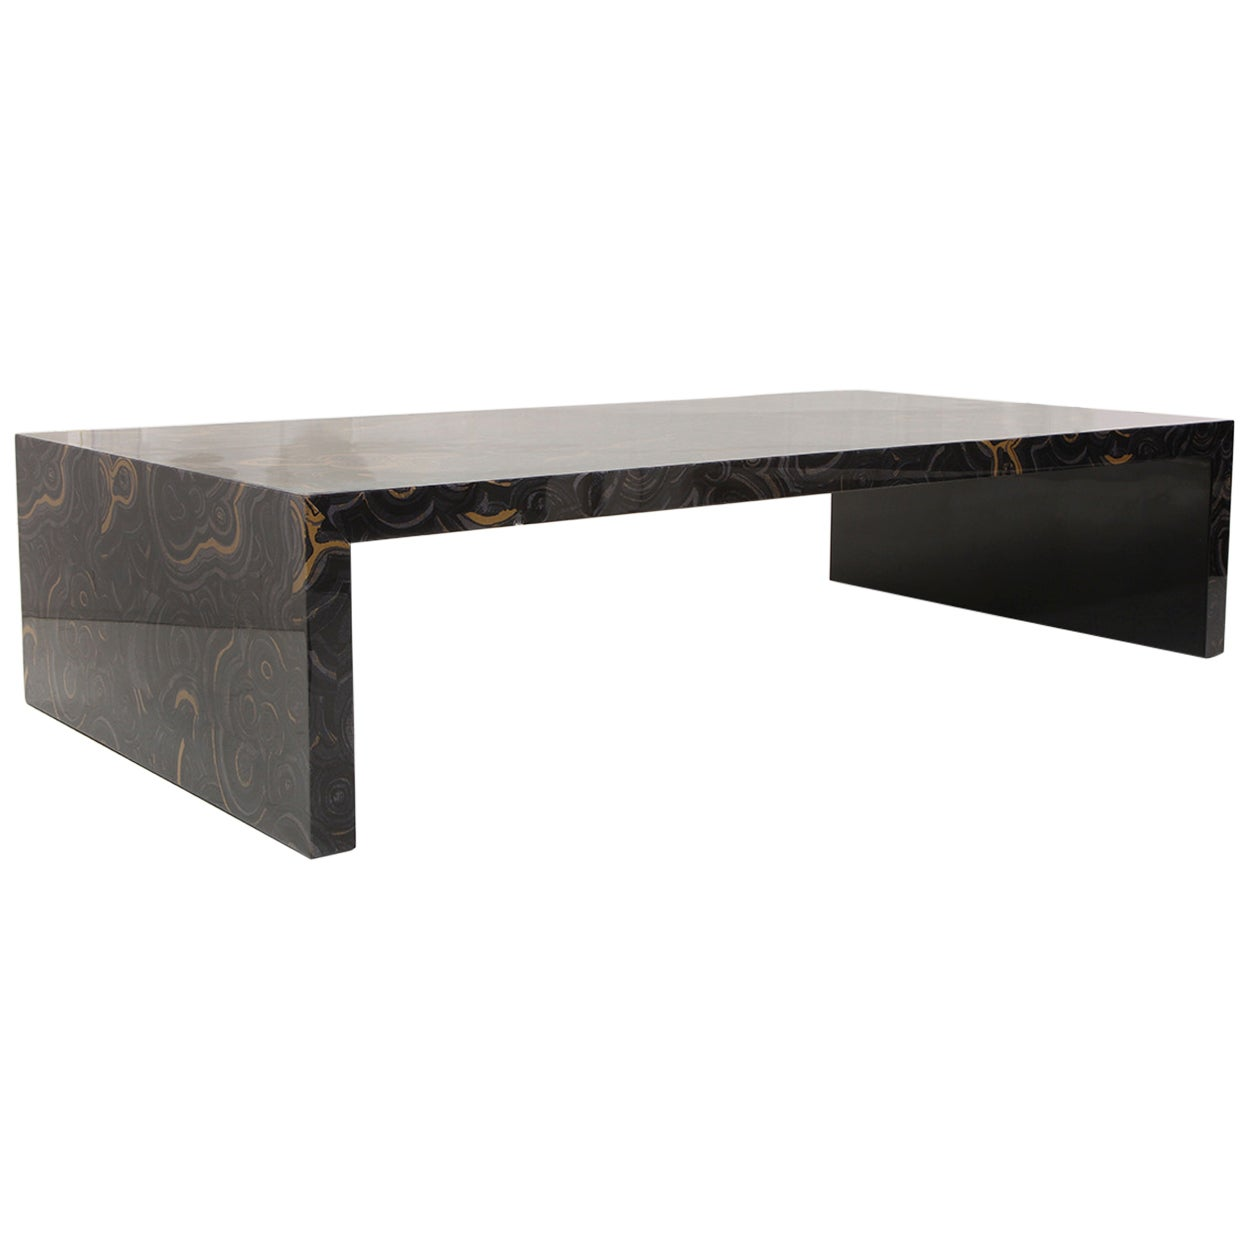 Liz O'Brien Editions Coffee  Table